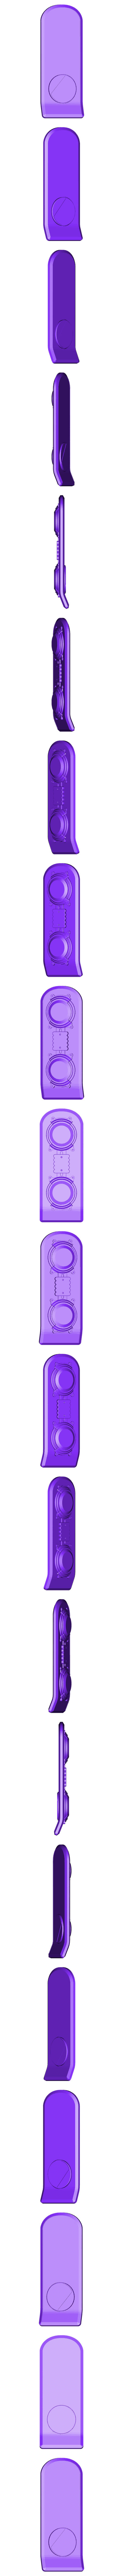 Hover_Board.STL Download free STL file Back to the future Nike Sneakers & HOVER BOARD made by ATOM 3D printer • 3D printing design, ATOM3dp